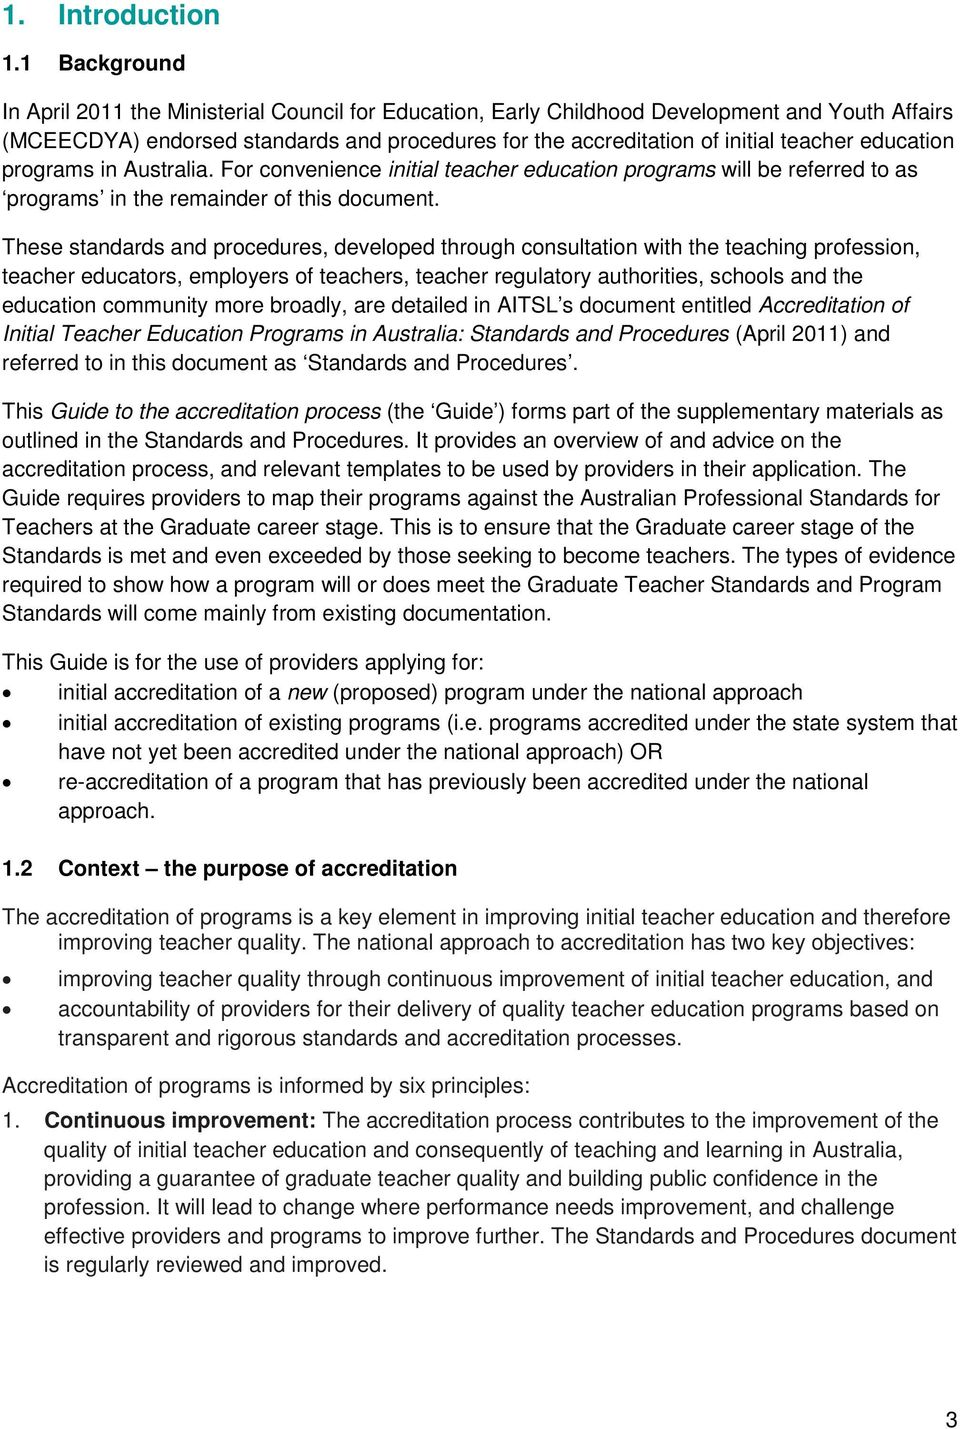 education programs in Australia. For convenience initial teacher education programs will be referred to as programs in the remainder of this document.